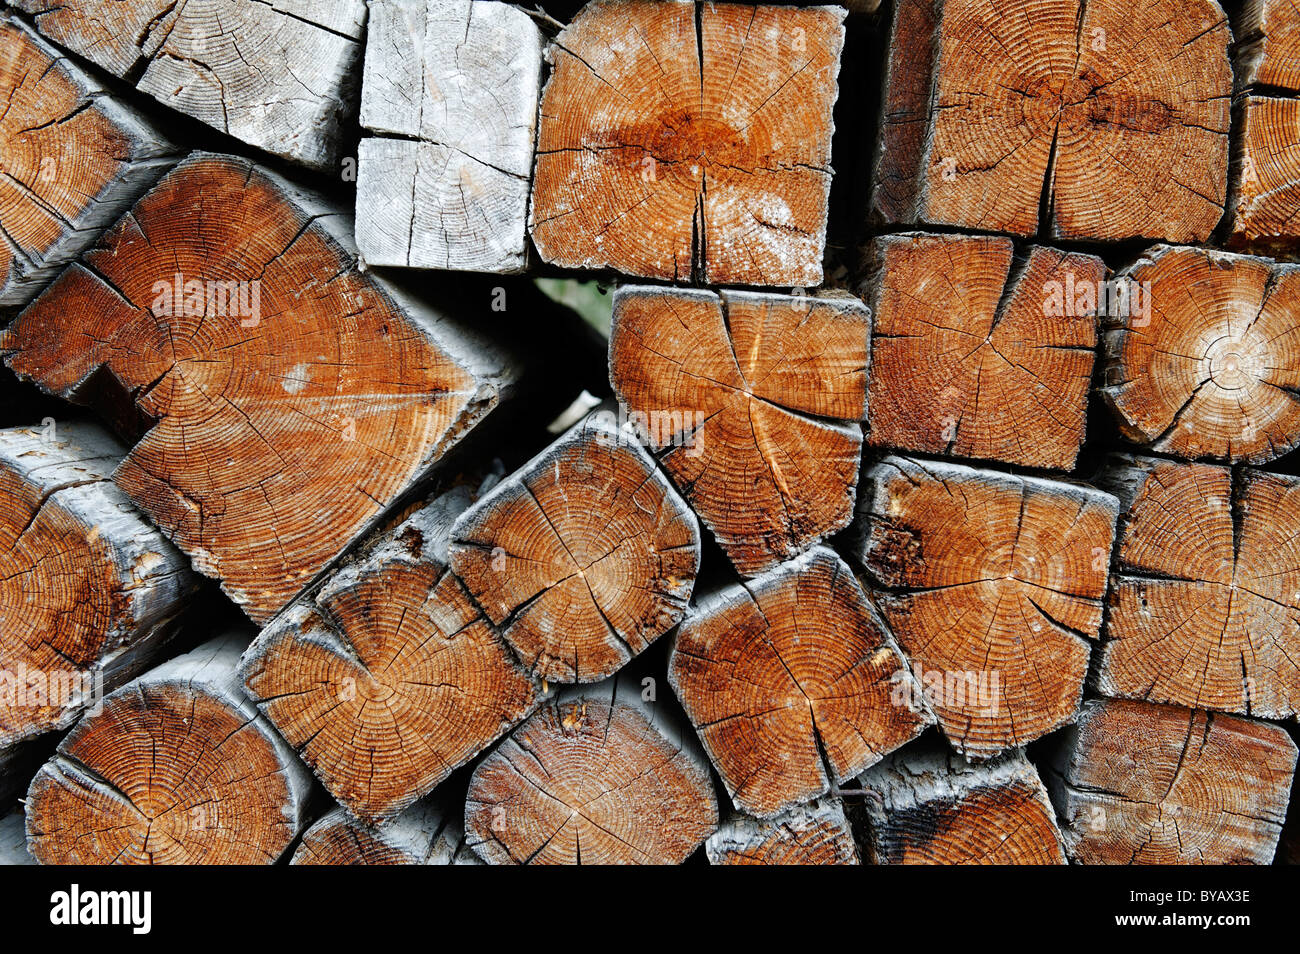 Old wooden beams, old fire wood - Stock Image